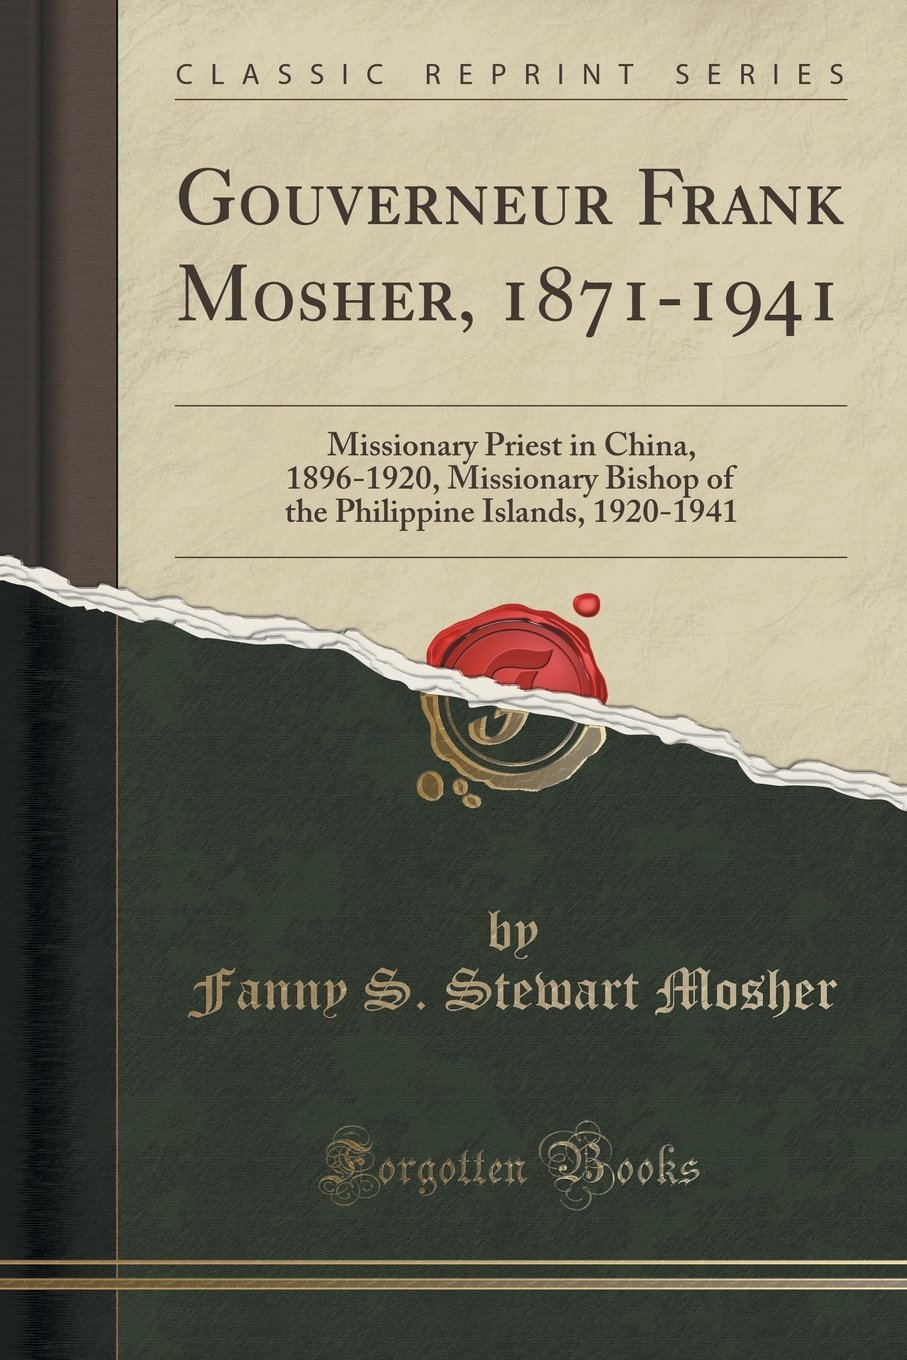 Gouverneur Frank Mosher, 1871-1941: Missionary Priest in China, 1896-1920, Missionary Bishop of the Philippine Islands, 1920-1941 (Classic Reprint)